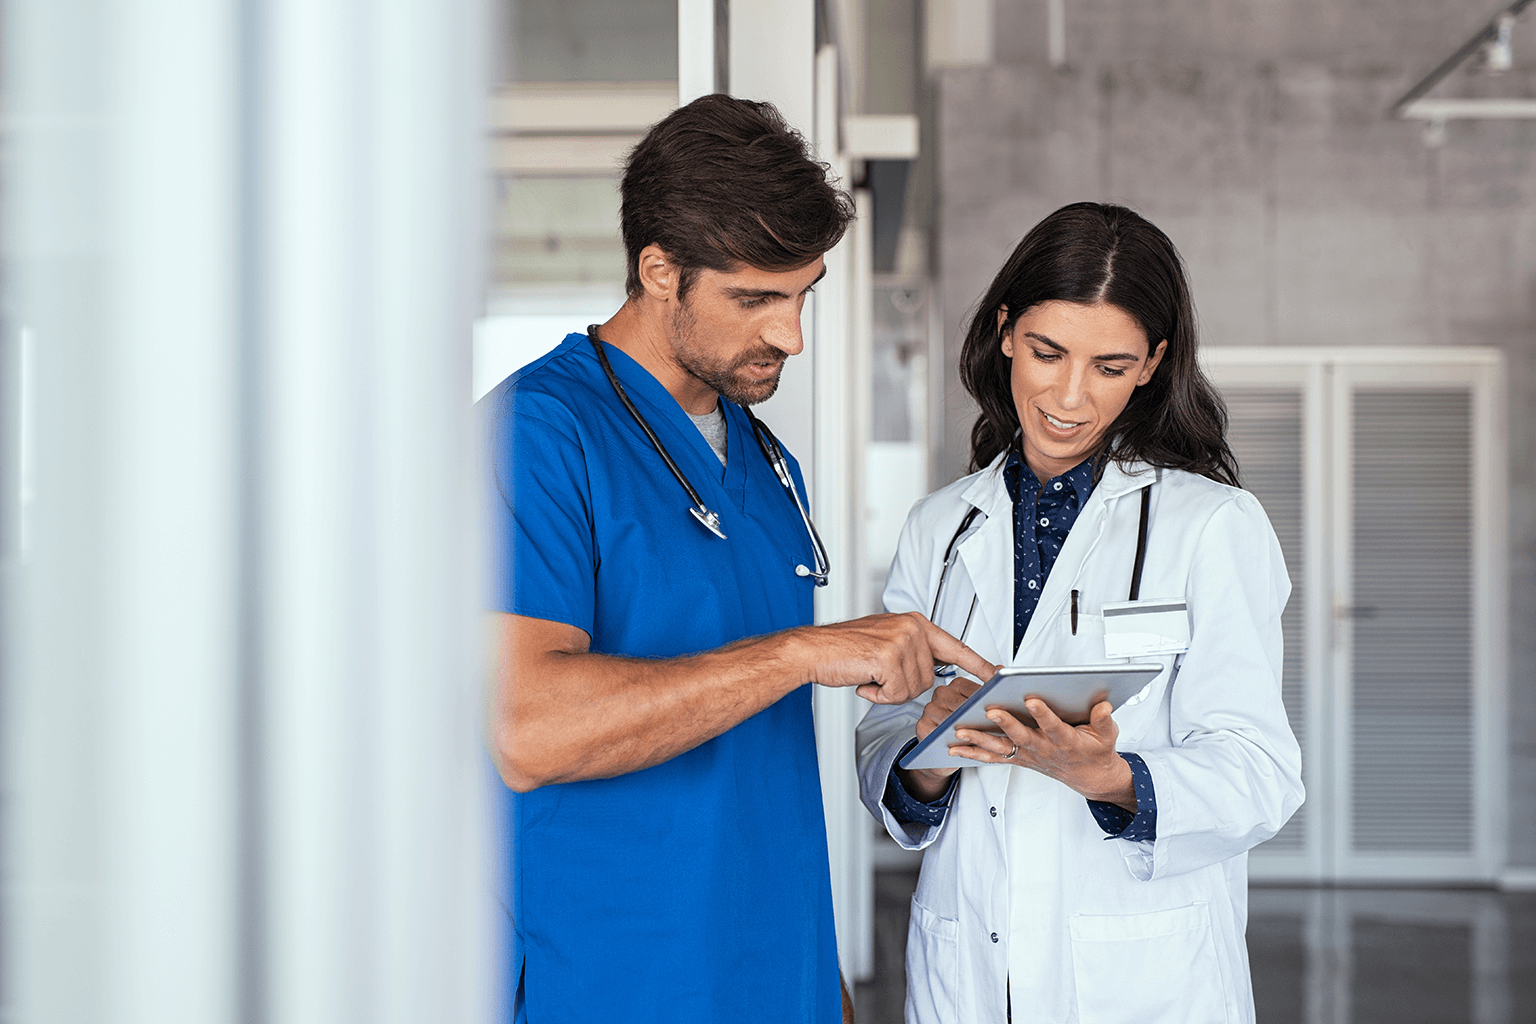 female-doctor-male-nurse-reviewing-information-on-tablet-in-hospital